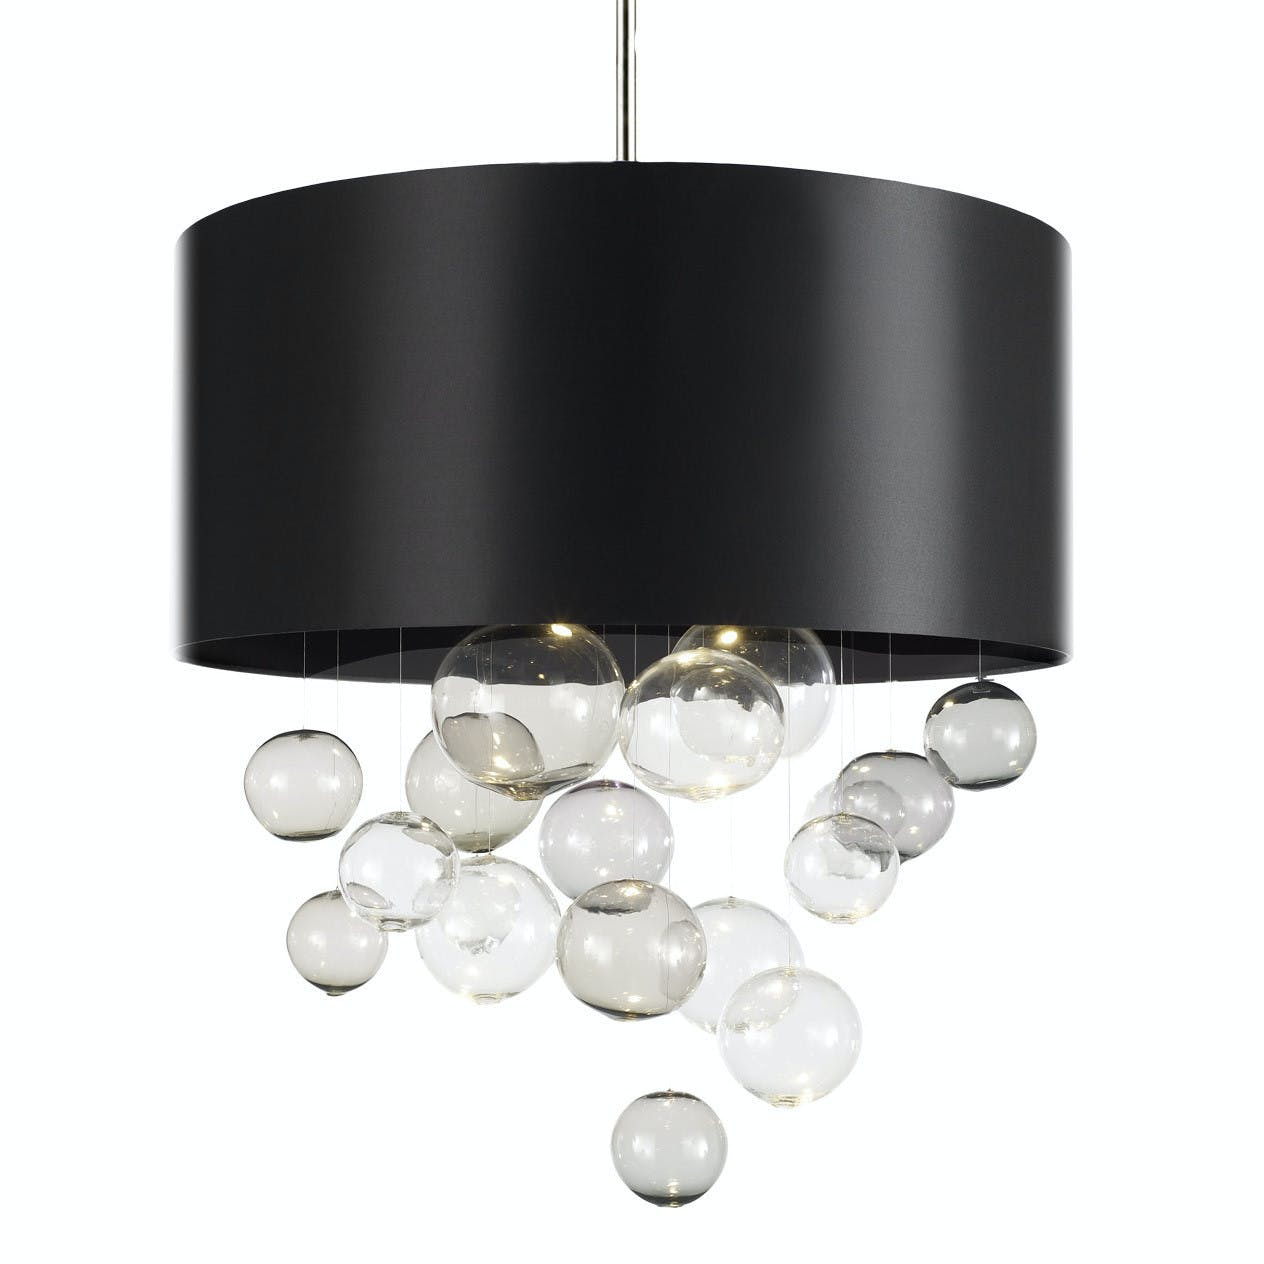 Cto Lighting Aero Hanging Thumb Black Haute Living